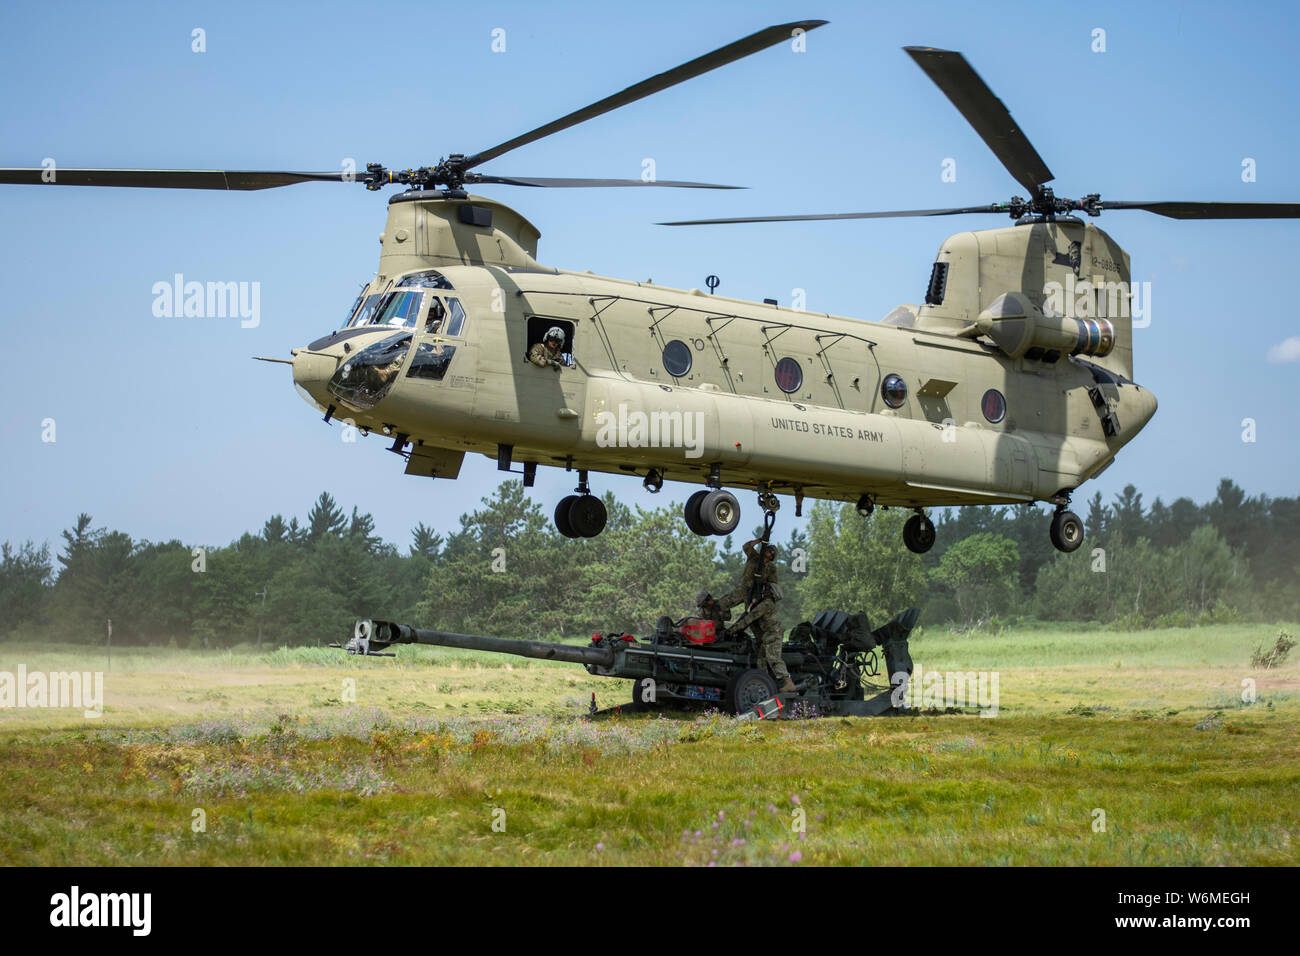 Soldiers of the 1st Battalion, 258th Field Artillery of the New York Army National Guard attach and M-777A2 howitzer to a CH-47 flown by the New York Army National Guard's Bravo Company, 3rd Battalion, 126th Aviation at Fort Drum, N.Y. on July 27, 2019. The 1st Battalion, 258th Field Artillery Soldiers were conducting live fire training and other exercises at Fort Drum as part of their two week annual training. ( U.S. Army National Guard photo by Sgt. Matthew Gunther) Stock Photo